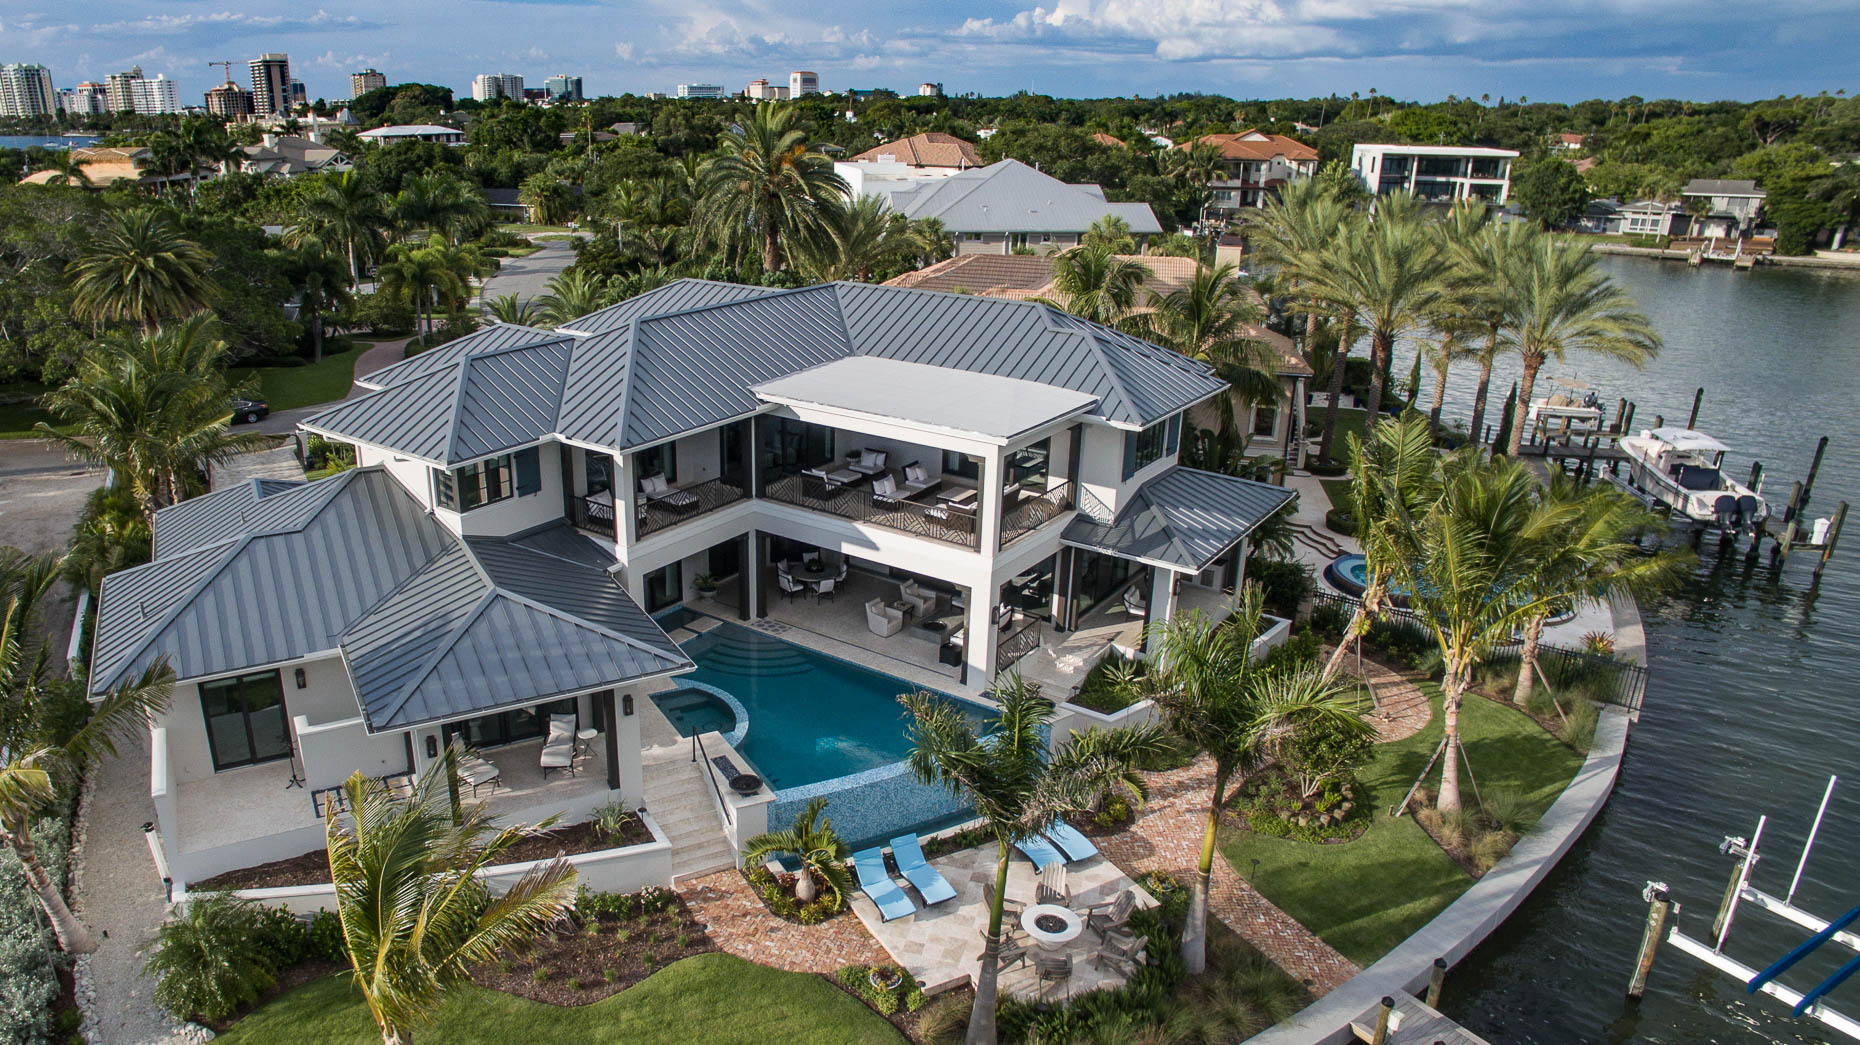 Aerial Custom Waterfront Home - Mark Borosch Photography - Sarasota, FL